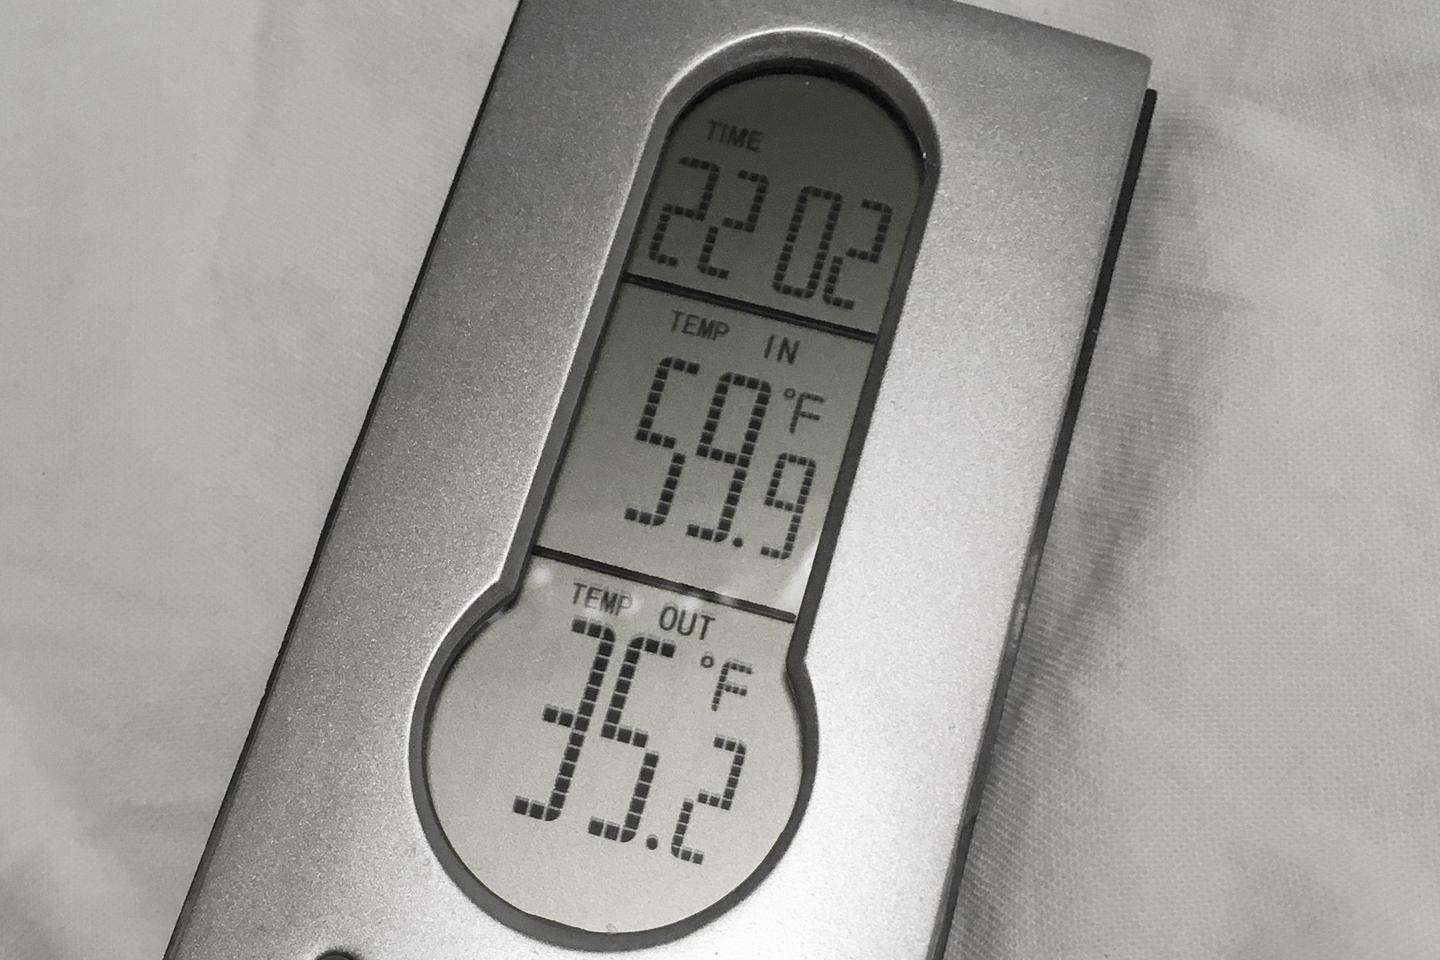 Polydrop designers tested the insulated shell in Big Bear, California, finding that the interior (heater off) maintained a temperature near 60° F (15° C) while the outside was down near 35° F (2° C)